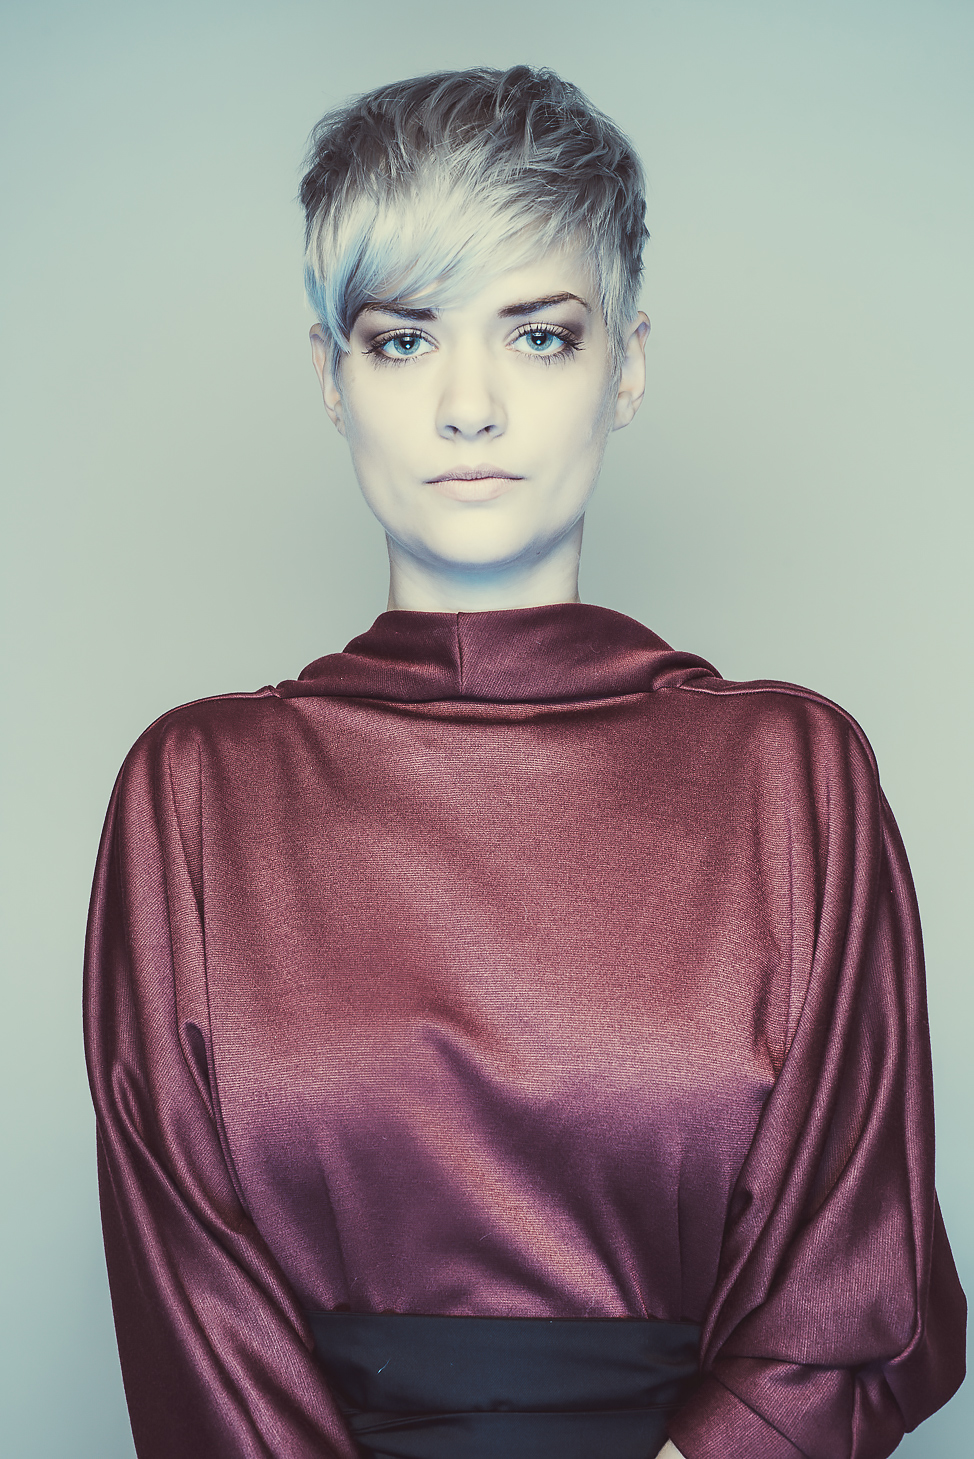 zaramia-ava-zaramiaava-leeds-fashion-designer-ethical-sustainable-tailored-minimalist-aya-burgundy-dress-obi-belt-black-versatile-drape-cowl-styling-womenswear-models-photoshoot-shrine-hairdressers-6